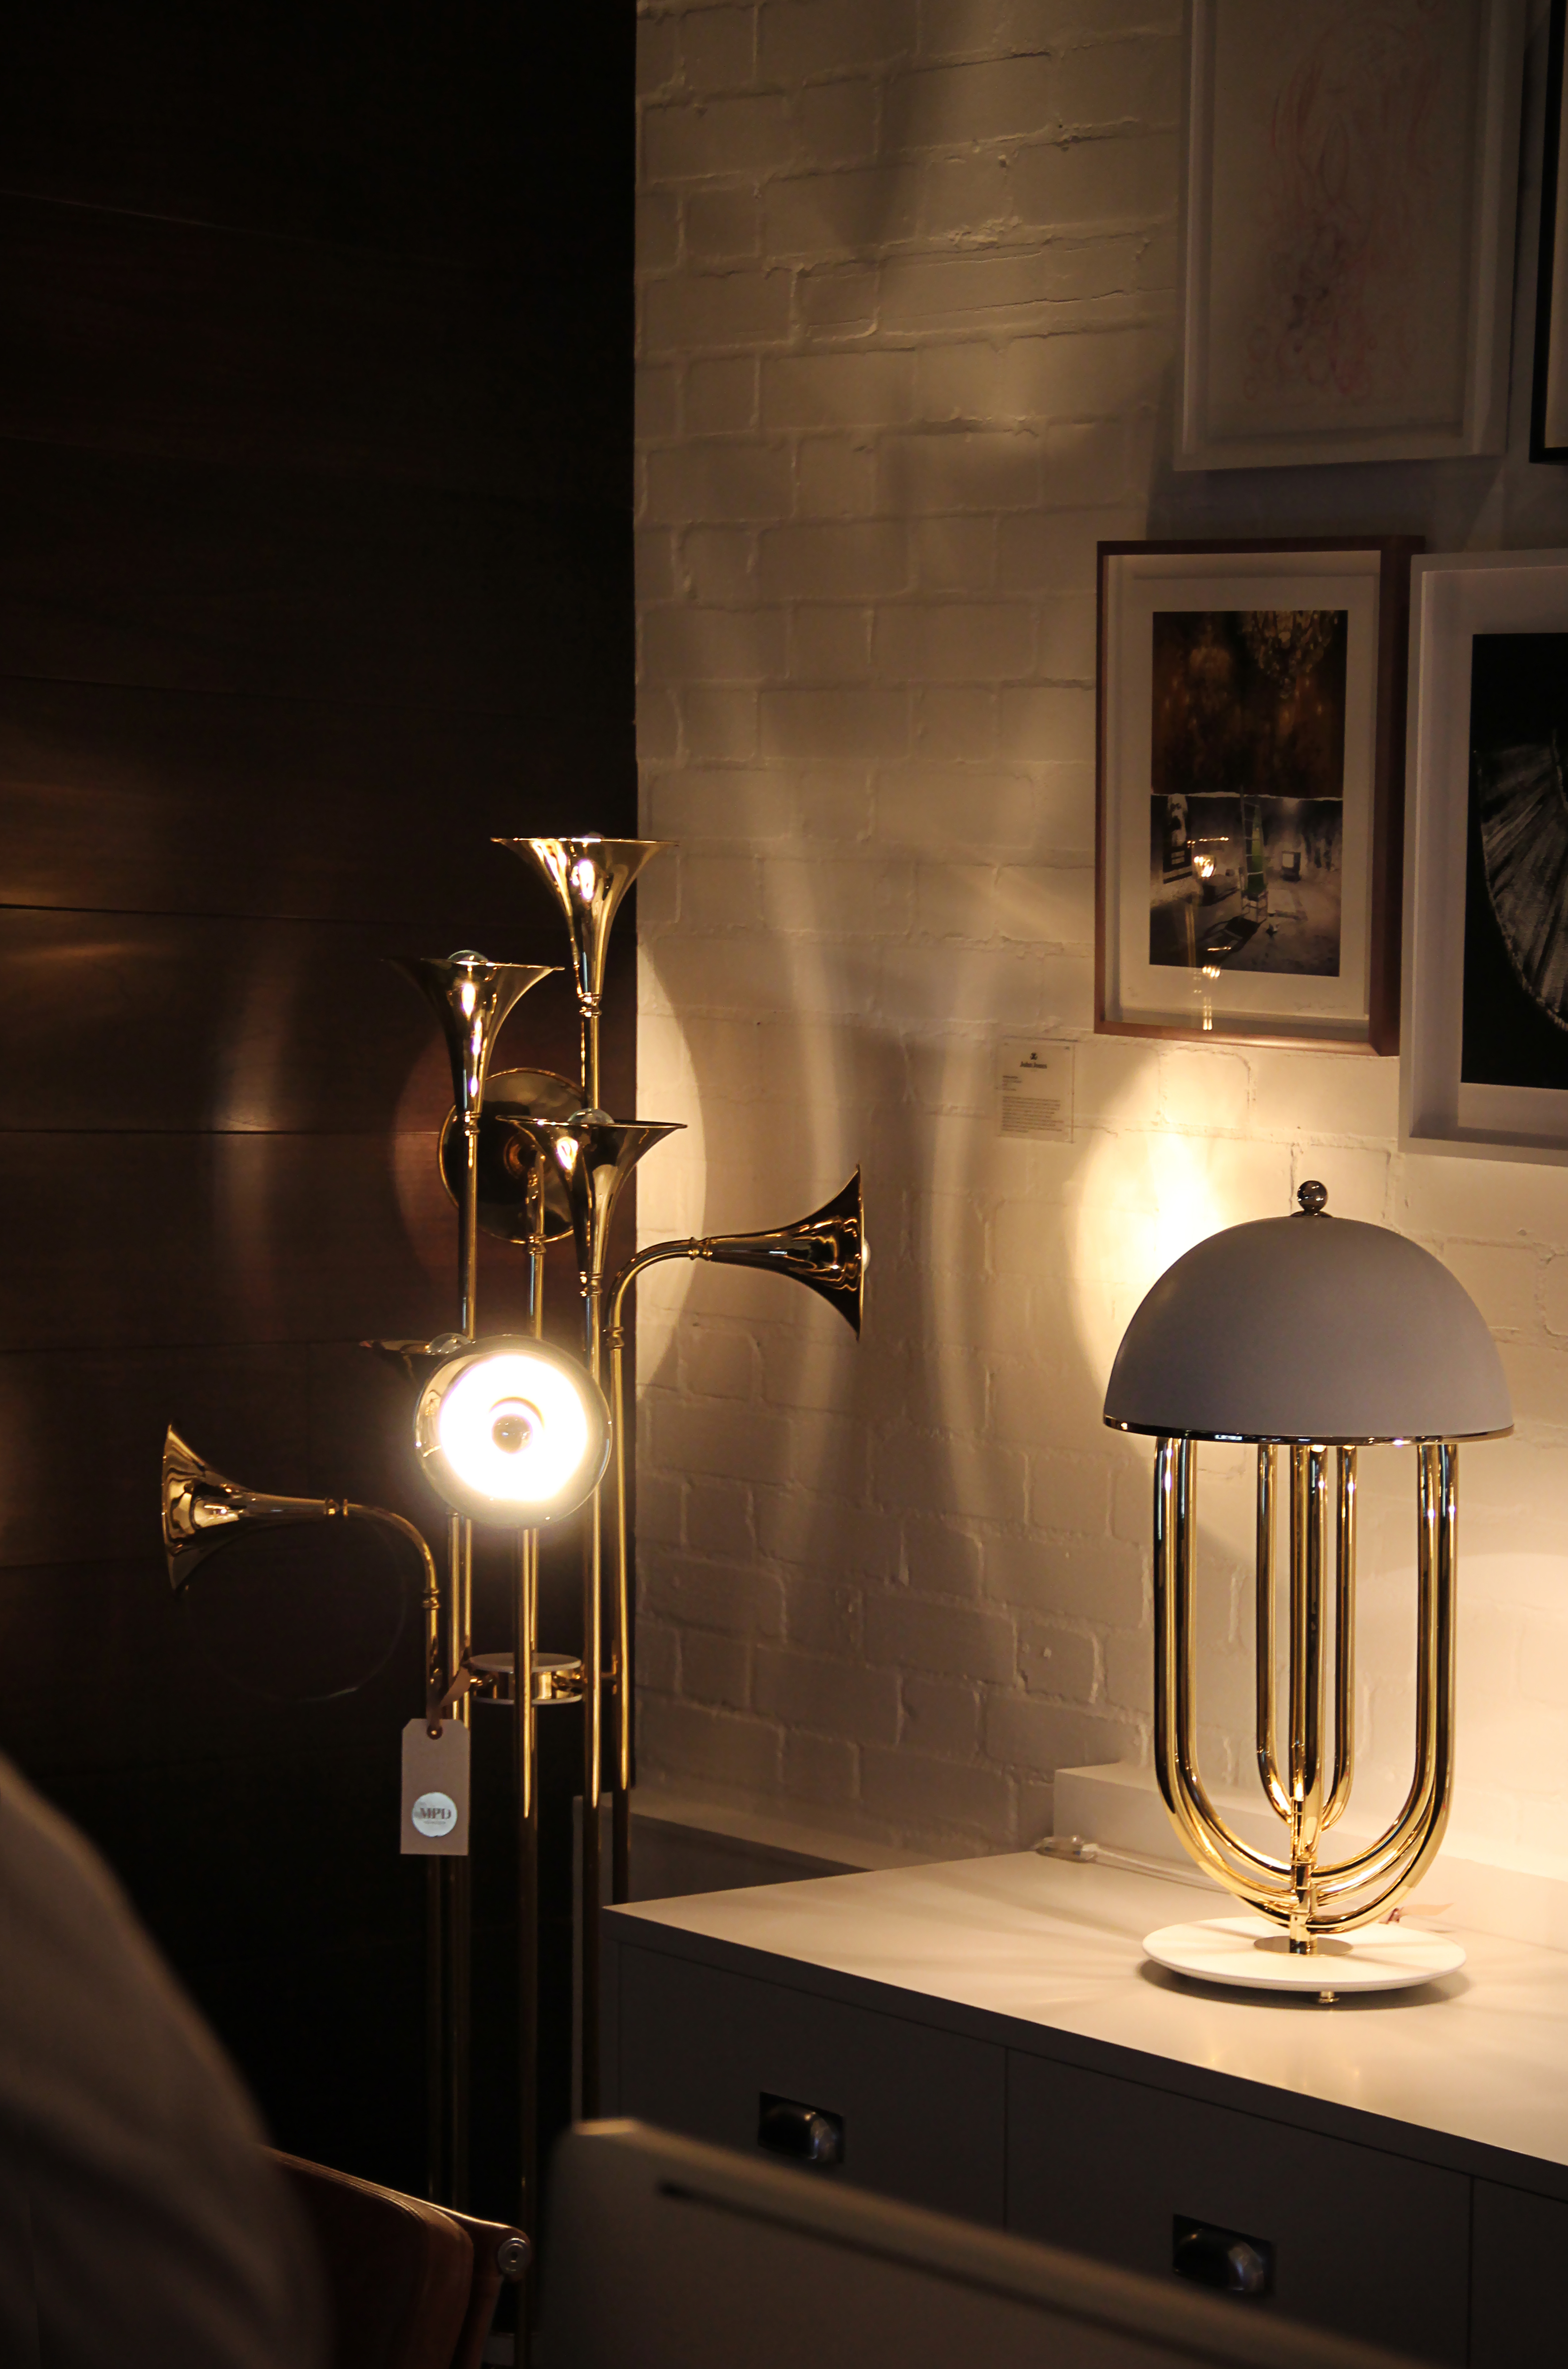 gold-plated floor lamp gold-plated floor lamp Get A Gold-Plated Floor Lamp At Discount Price With Floor Samples Get A Gold Plated Floor Lamp At Discount Price With Floor Samples 1